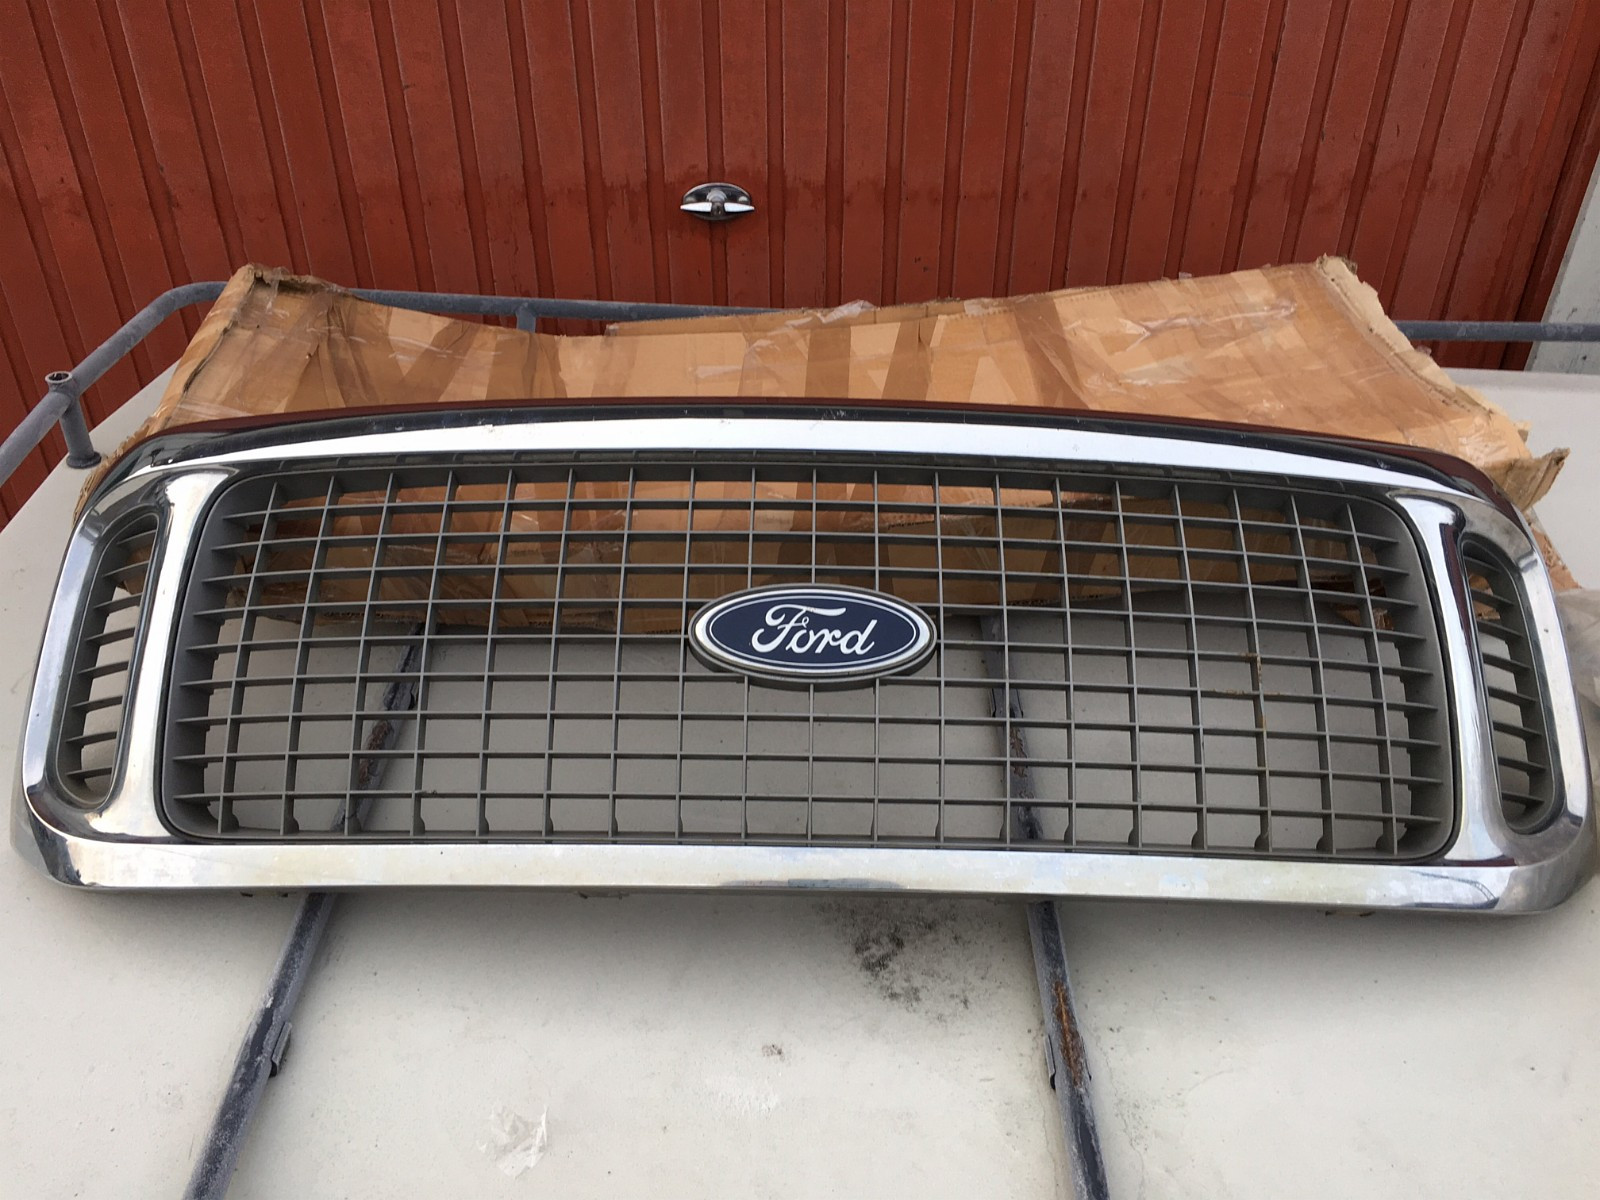 Ford Excursion Grill - Rælingen  - Ford Excursion Grill - Rælingen